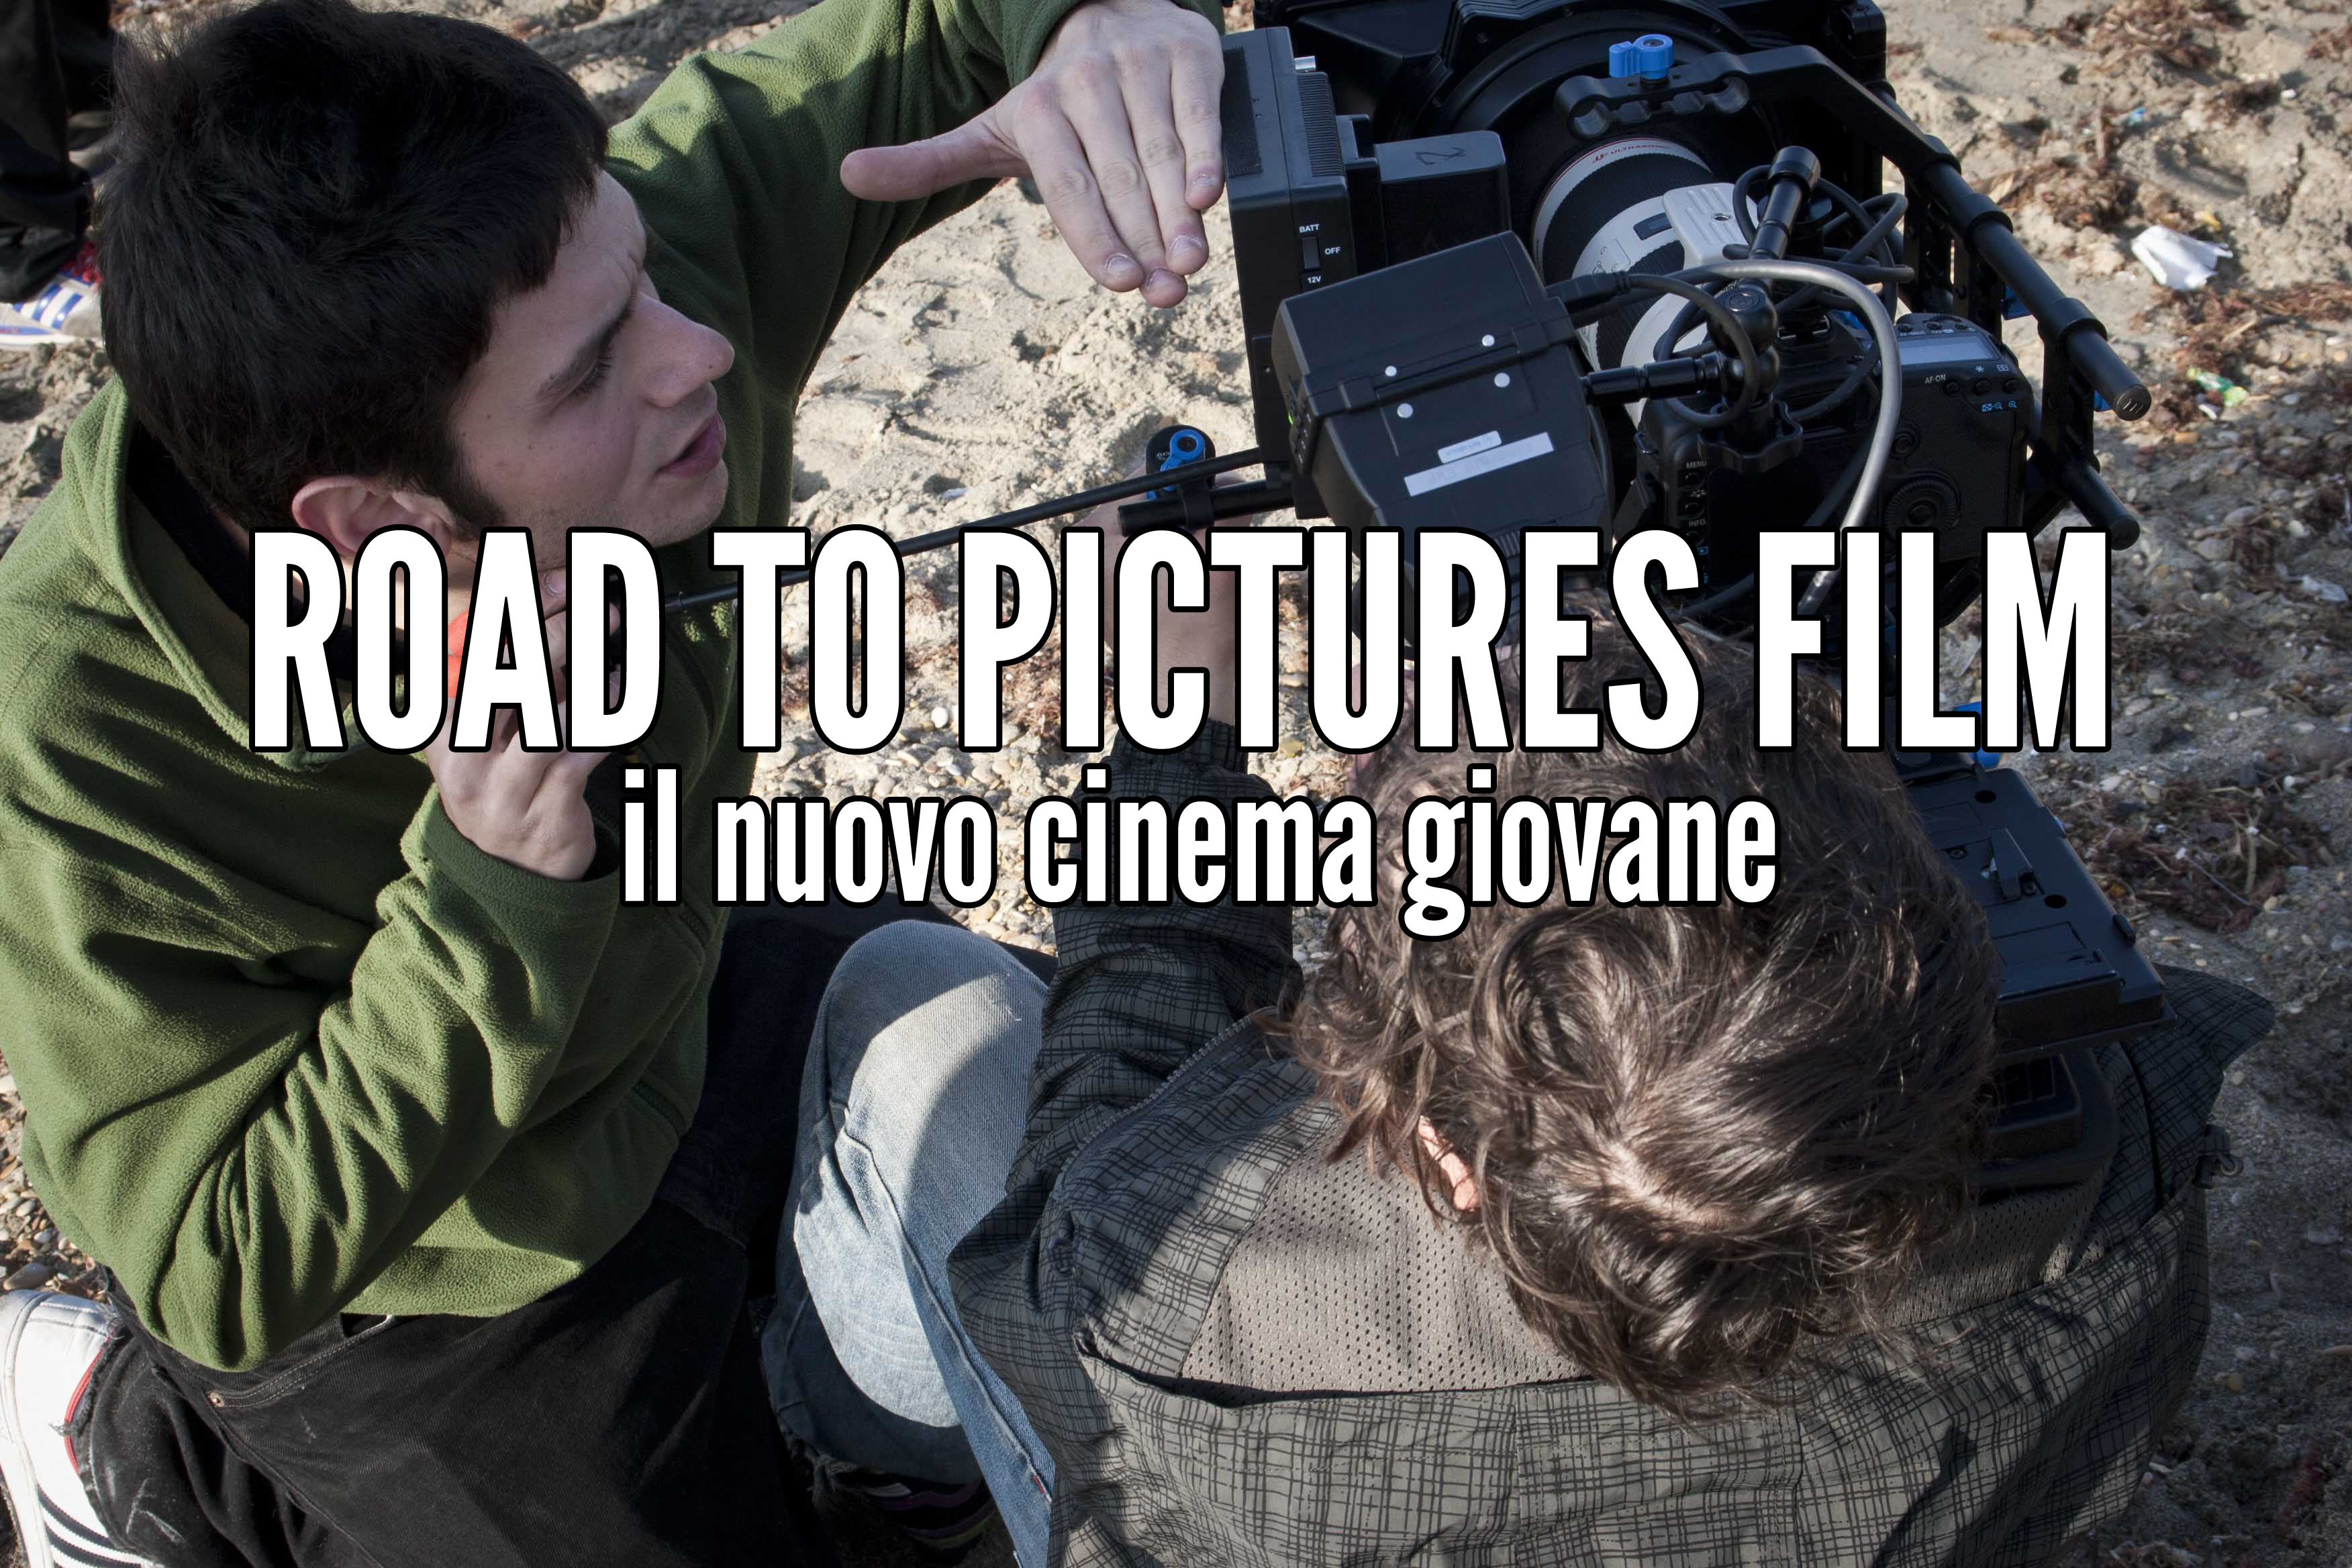 sceneggiatura regia il cinema con chi fa cinema road to pictures film lab roma cinema corsi cortometraggio